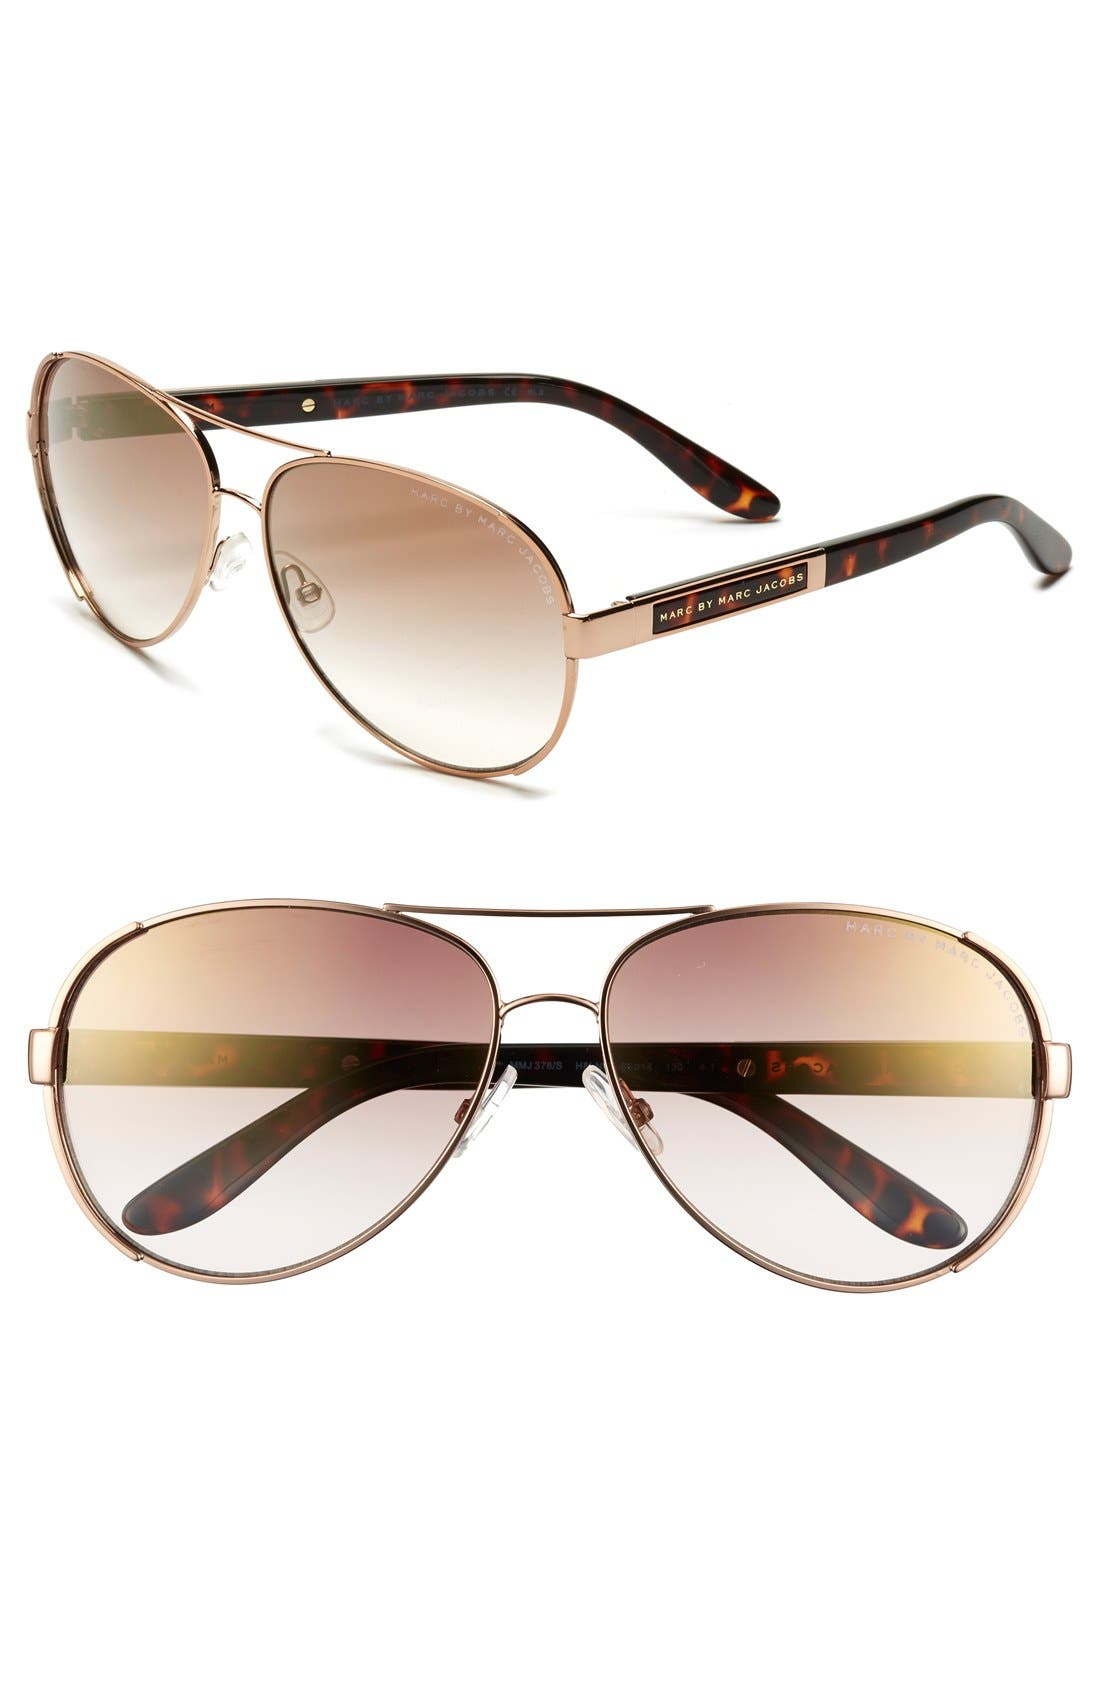 Main Image - MARC BY MARC JACOBS 60mm Stainless Steel Aviator Sunglasses